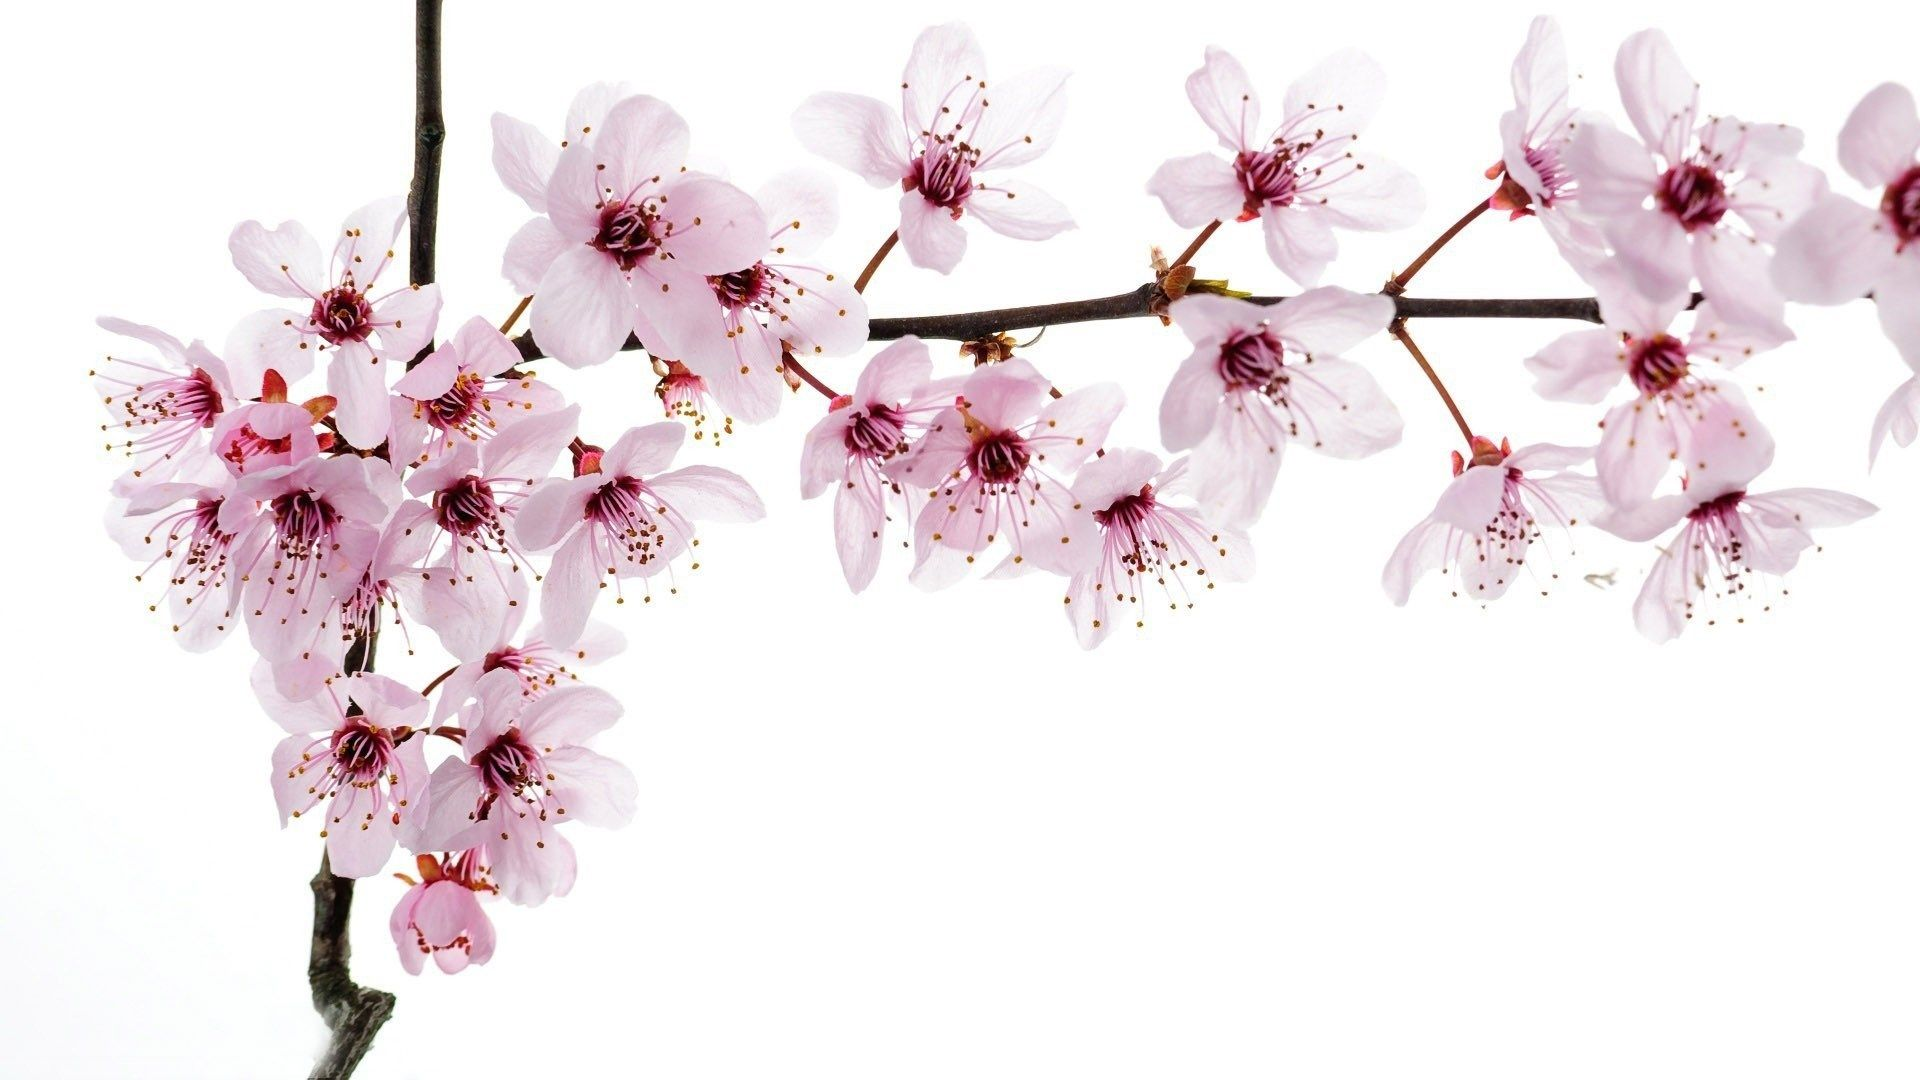 Flowers Cherry Blossoms Wallpapers Full Size Cherry Blossom Wallpaper Cherry Blossom Best Flowers Images